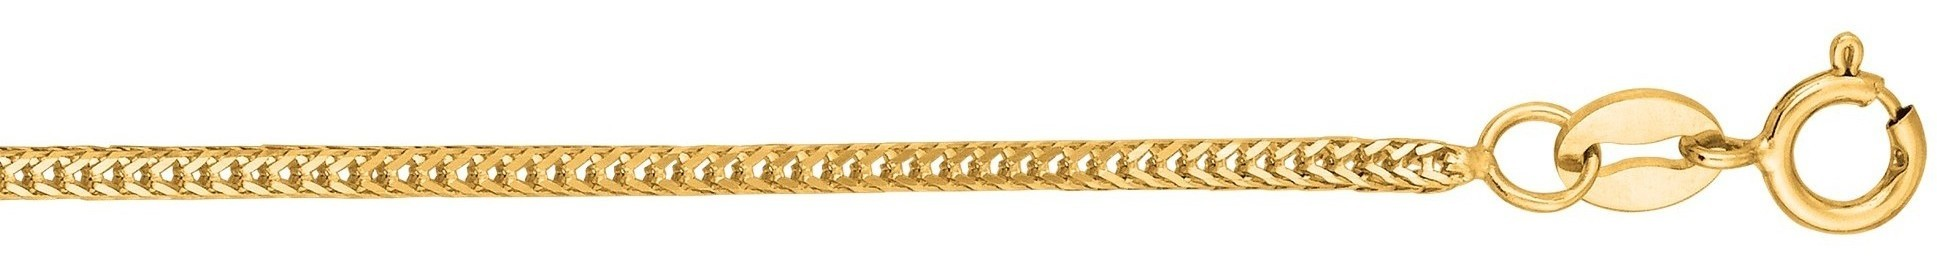 "16"" 14K Yellow Gold 1.0mm (0.04"") Polished Diamond Cut Foxtail Chain w/ Lobster Clasp"